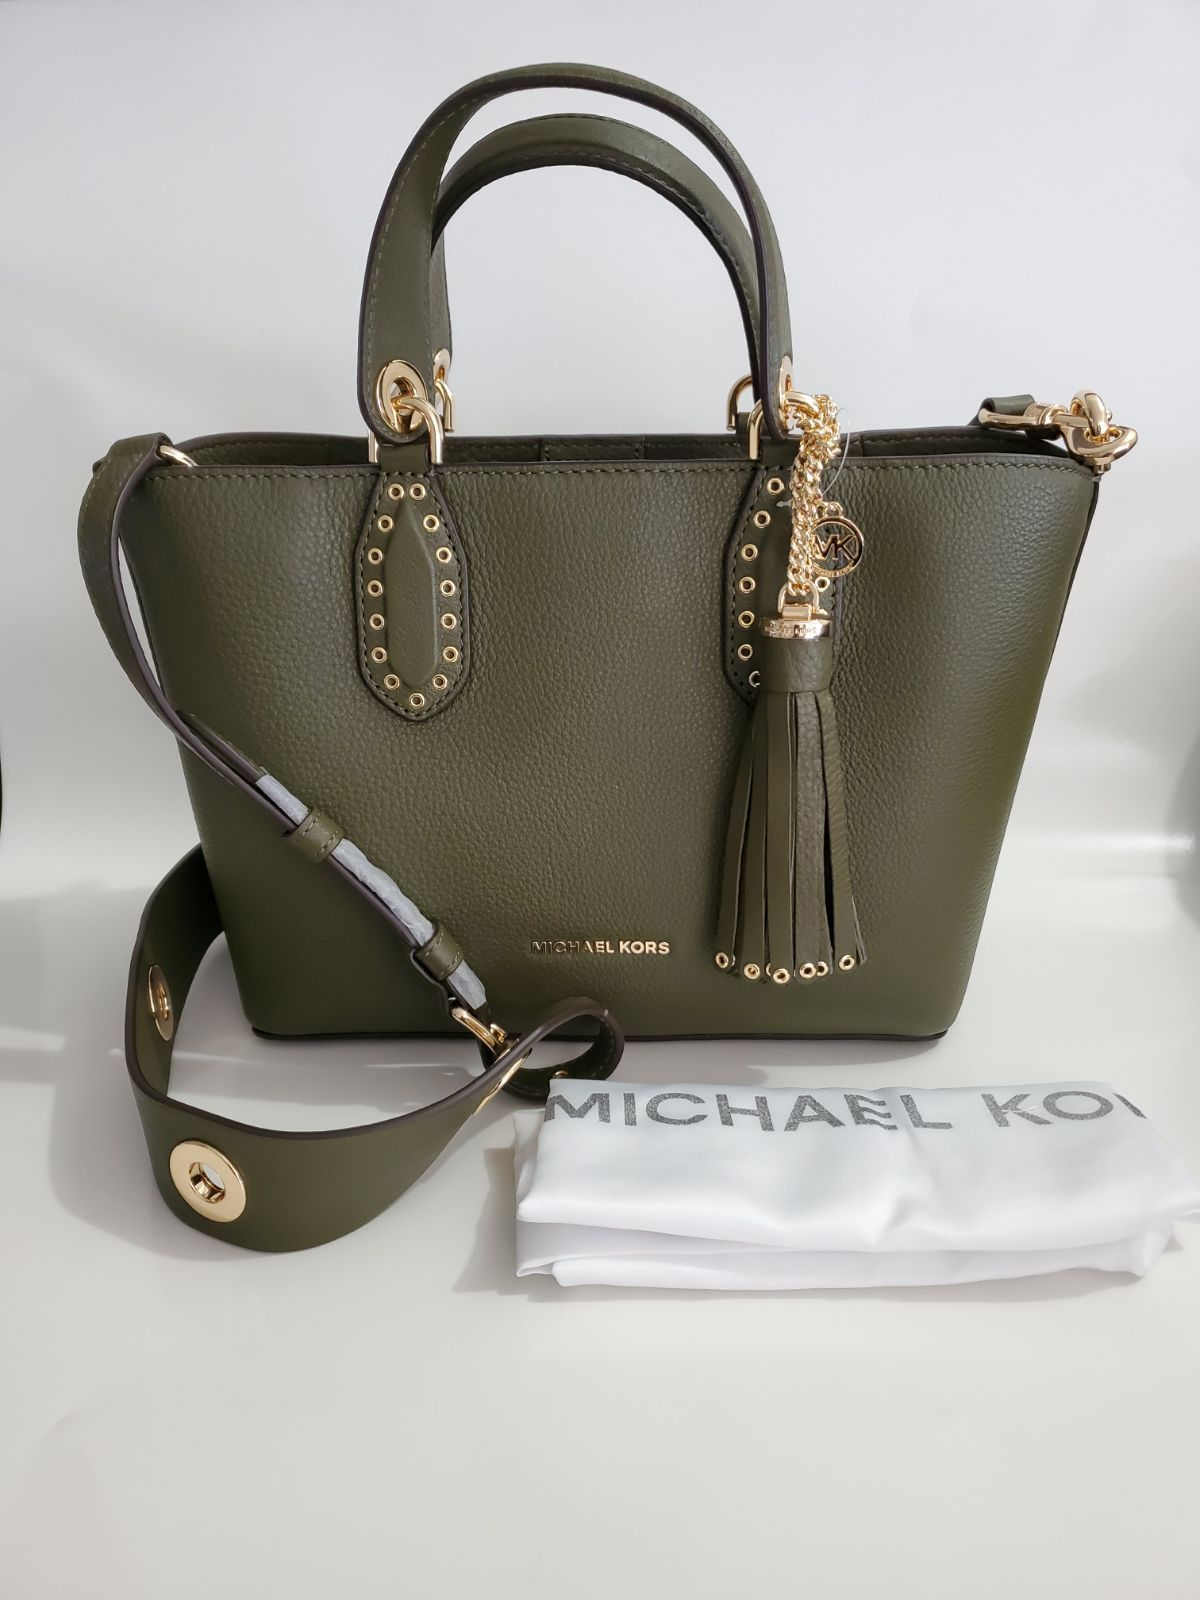 Nwt Michael Kors Brooklyn Small Satchel Wallet Wallet Is Convertible Crossbody Or Wallet Butterfly Em Michael Kors Shoulder Bag Michael Kors Purse Wallet